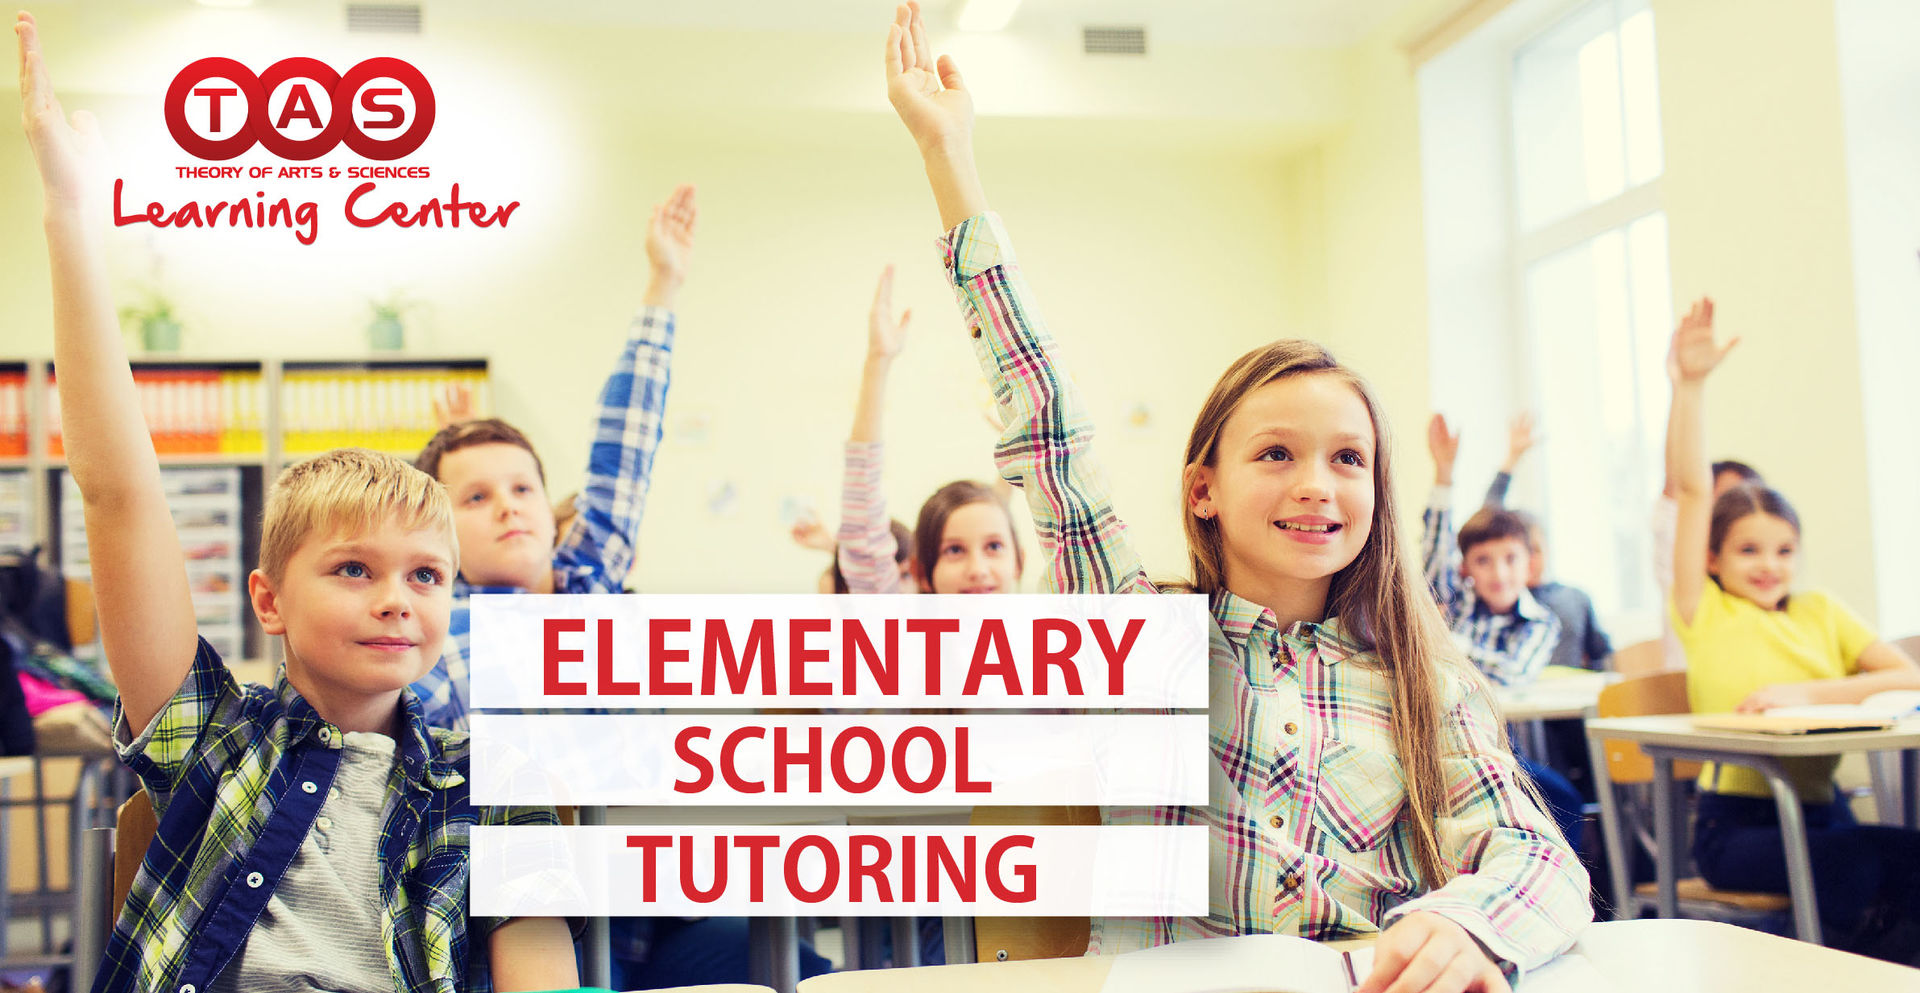 Elementary School Tutoring